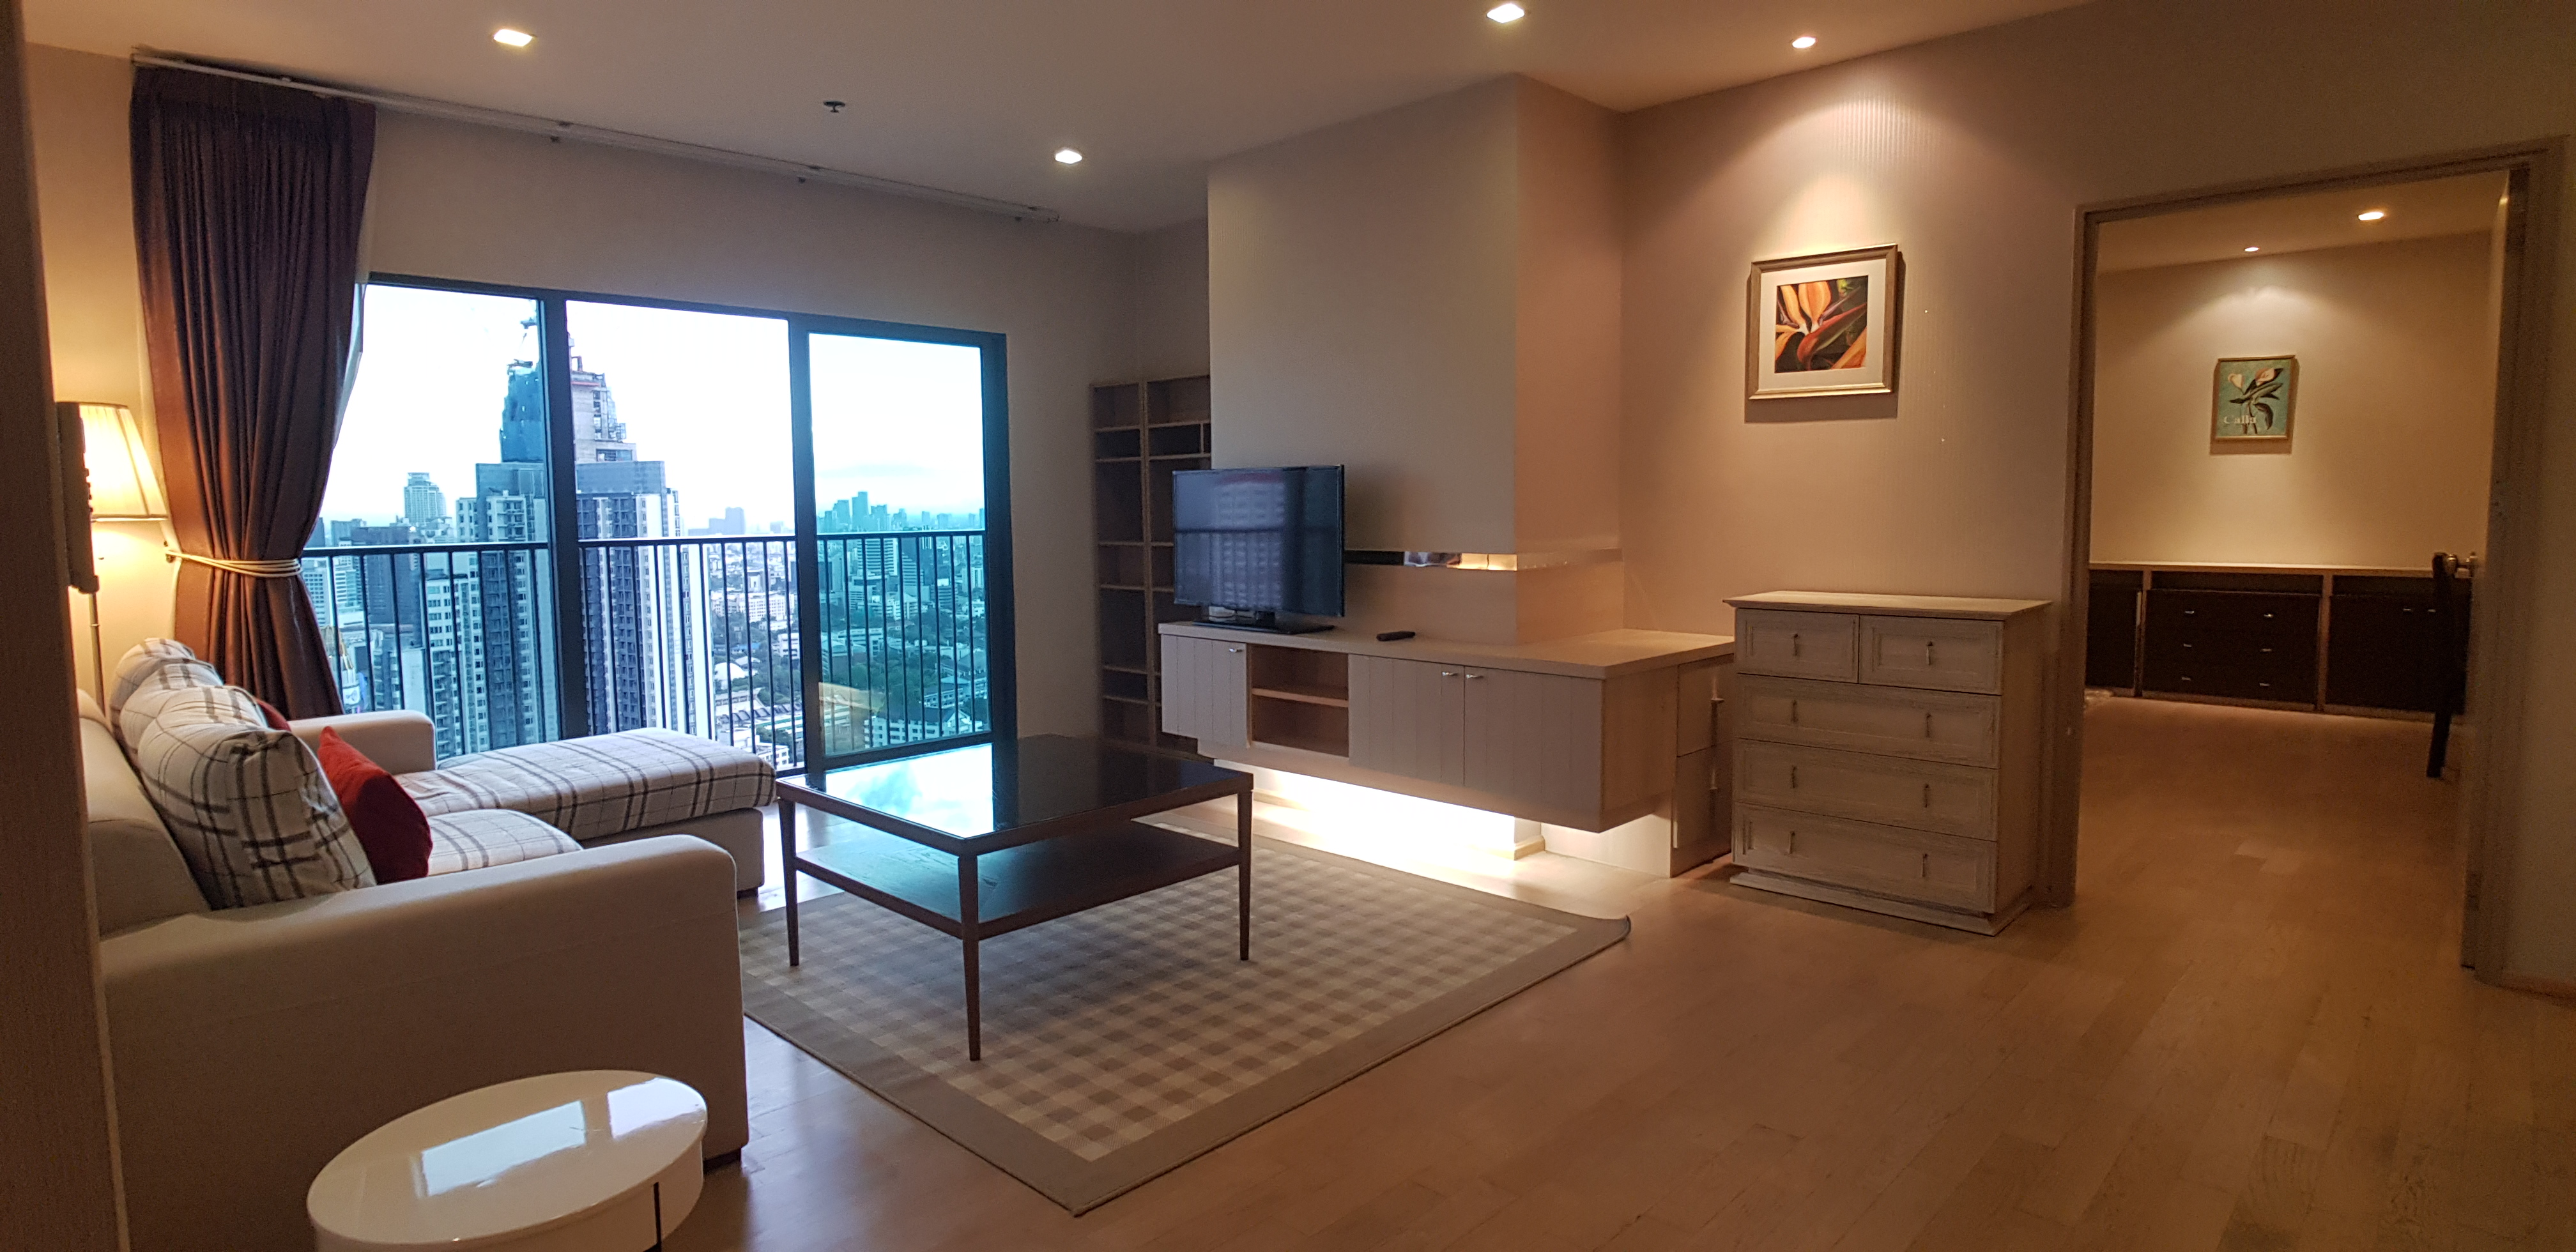 Noble Remix 2 3 Bedroom Unit For Rent (Next To Thong Lo BTS)